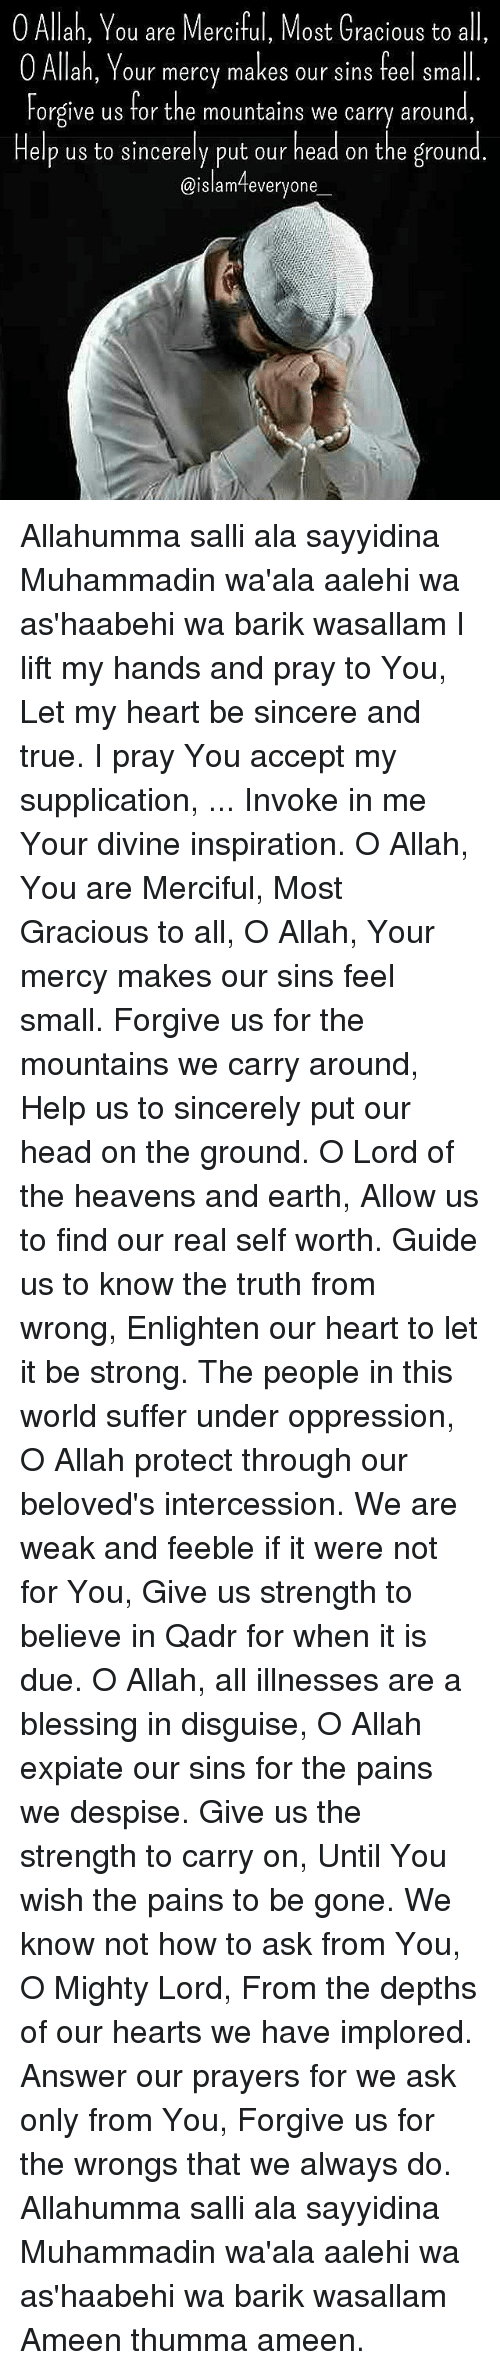 Head, Memes, and True: 0 Allah, You are Merciful, Most Gracious to all,  O Allah, Your mercy makes our sins feel small  Forgive us for the mountains we carry around  Help us to sincerely put our head on the ground  @islam everyone Allahumma salli ala sayyidina Muhammadin wa'ala aalehi wa as'haabehi wa barik wasallam I lift my hands and pray to You, Let my heart be sincere and true. I pray You accept my supplication, ... Invoke in me Your divine inspiration. O Allah, You are Merciful, Most Gracious to all, O Allah, Your mercy makes our sins feel small. Forgive us for the mountains we carry around, Help us to sincerely put our head on the ground. O Lord of the heavens and earth, Allow us to find our real self worth. Guide us to know the truth from wrong, Enlighten our heart to let it be strong. The people in this world suffer under oppression, O Allah protect through our beloved's intercession. We are weak and feeble if it were not for You, Give us strength to believe in Qadr for when it is due. O Allah, all illnesses are a blessing in disguise, O Allah expiate our sins for the pains we despise. Give us the strength to carry on, Until You wish the pains to be gone. We know not how to ask from You, O Mighty Lord, From the depths of our hearts we have implored. Answer our prayers for we ask only from You, Forgive us for the wrongs that we always do. Allahumma salli ala sayyidina Muhammadin wa'ala aalehi wa as'haabehi wa barik wasallam Ameen thumma ameen.